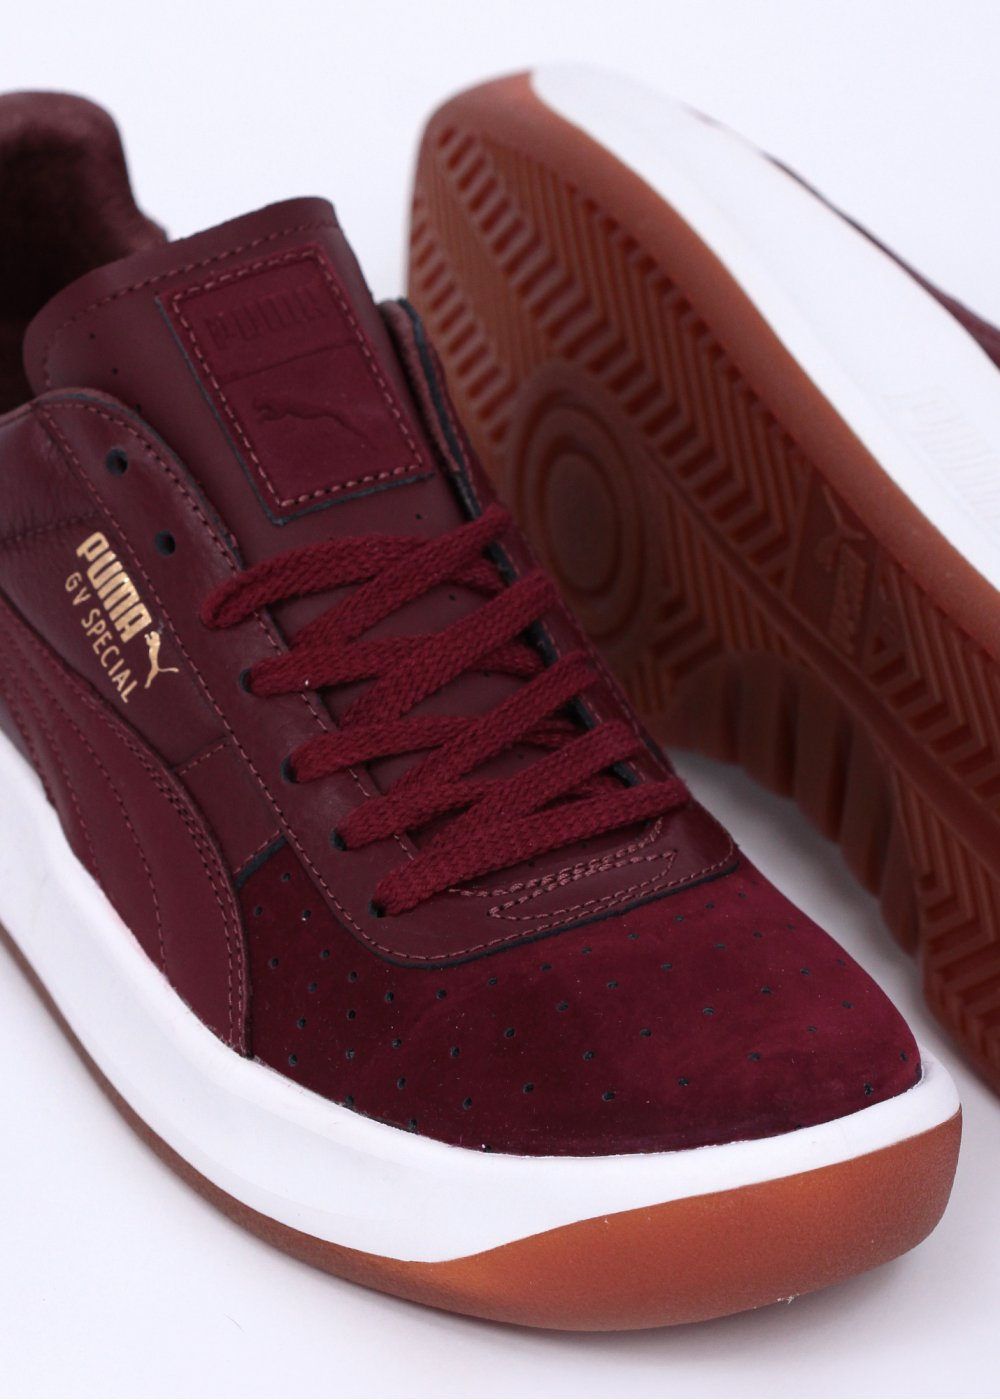 competitive price 3447d c823b Puma GV 'Guillermo Vilas' Special Exotic Trainers - Burgundy